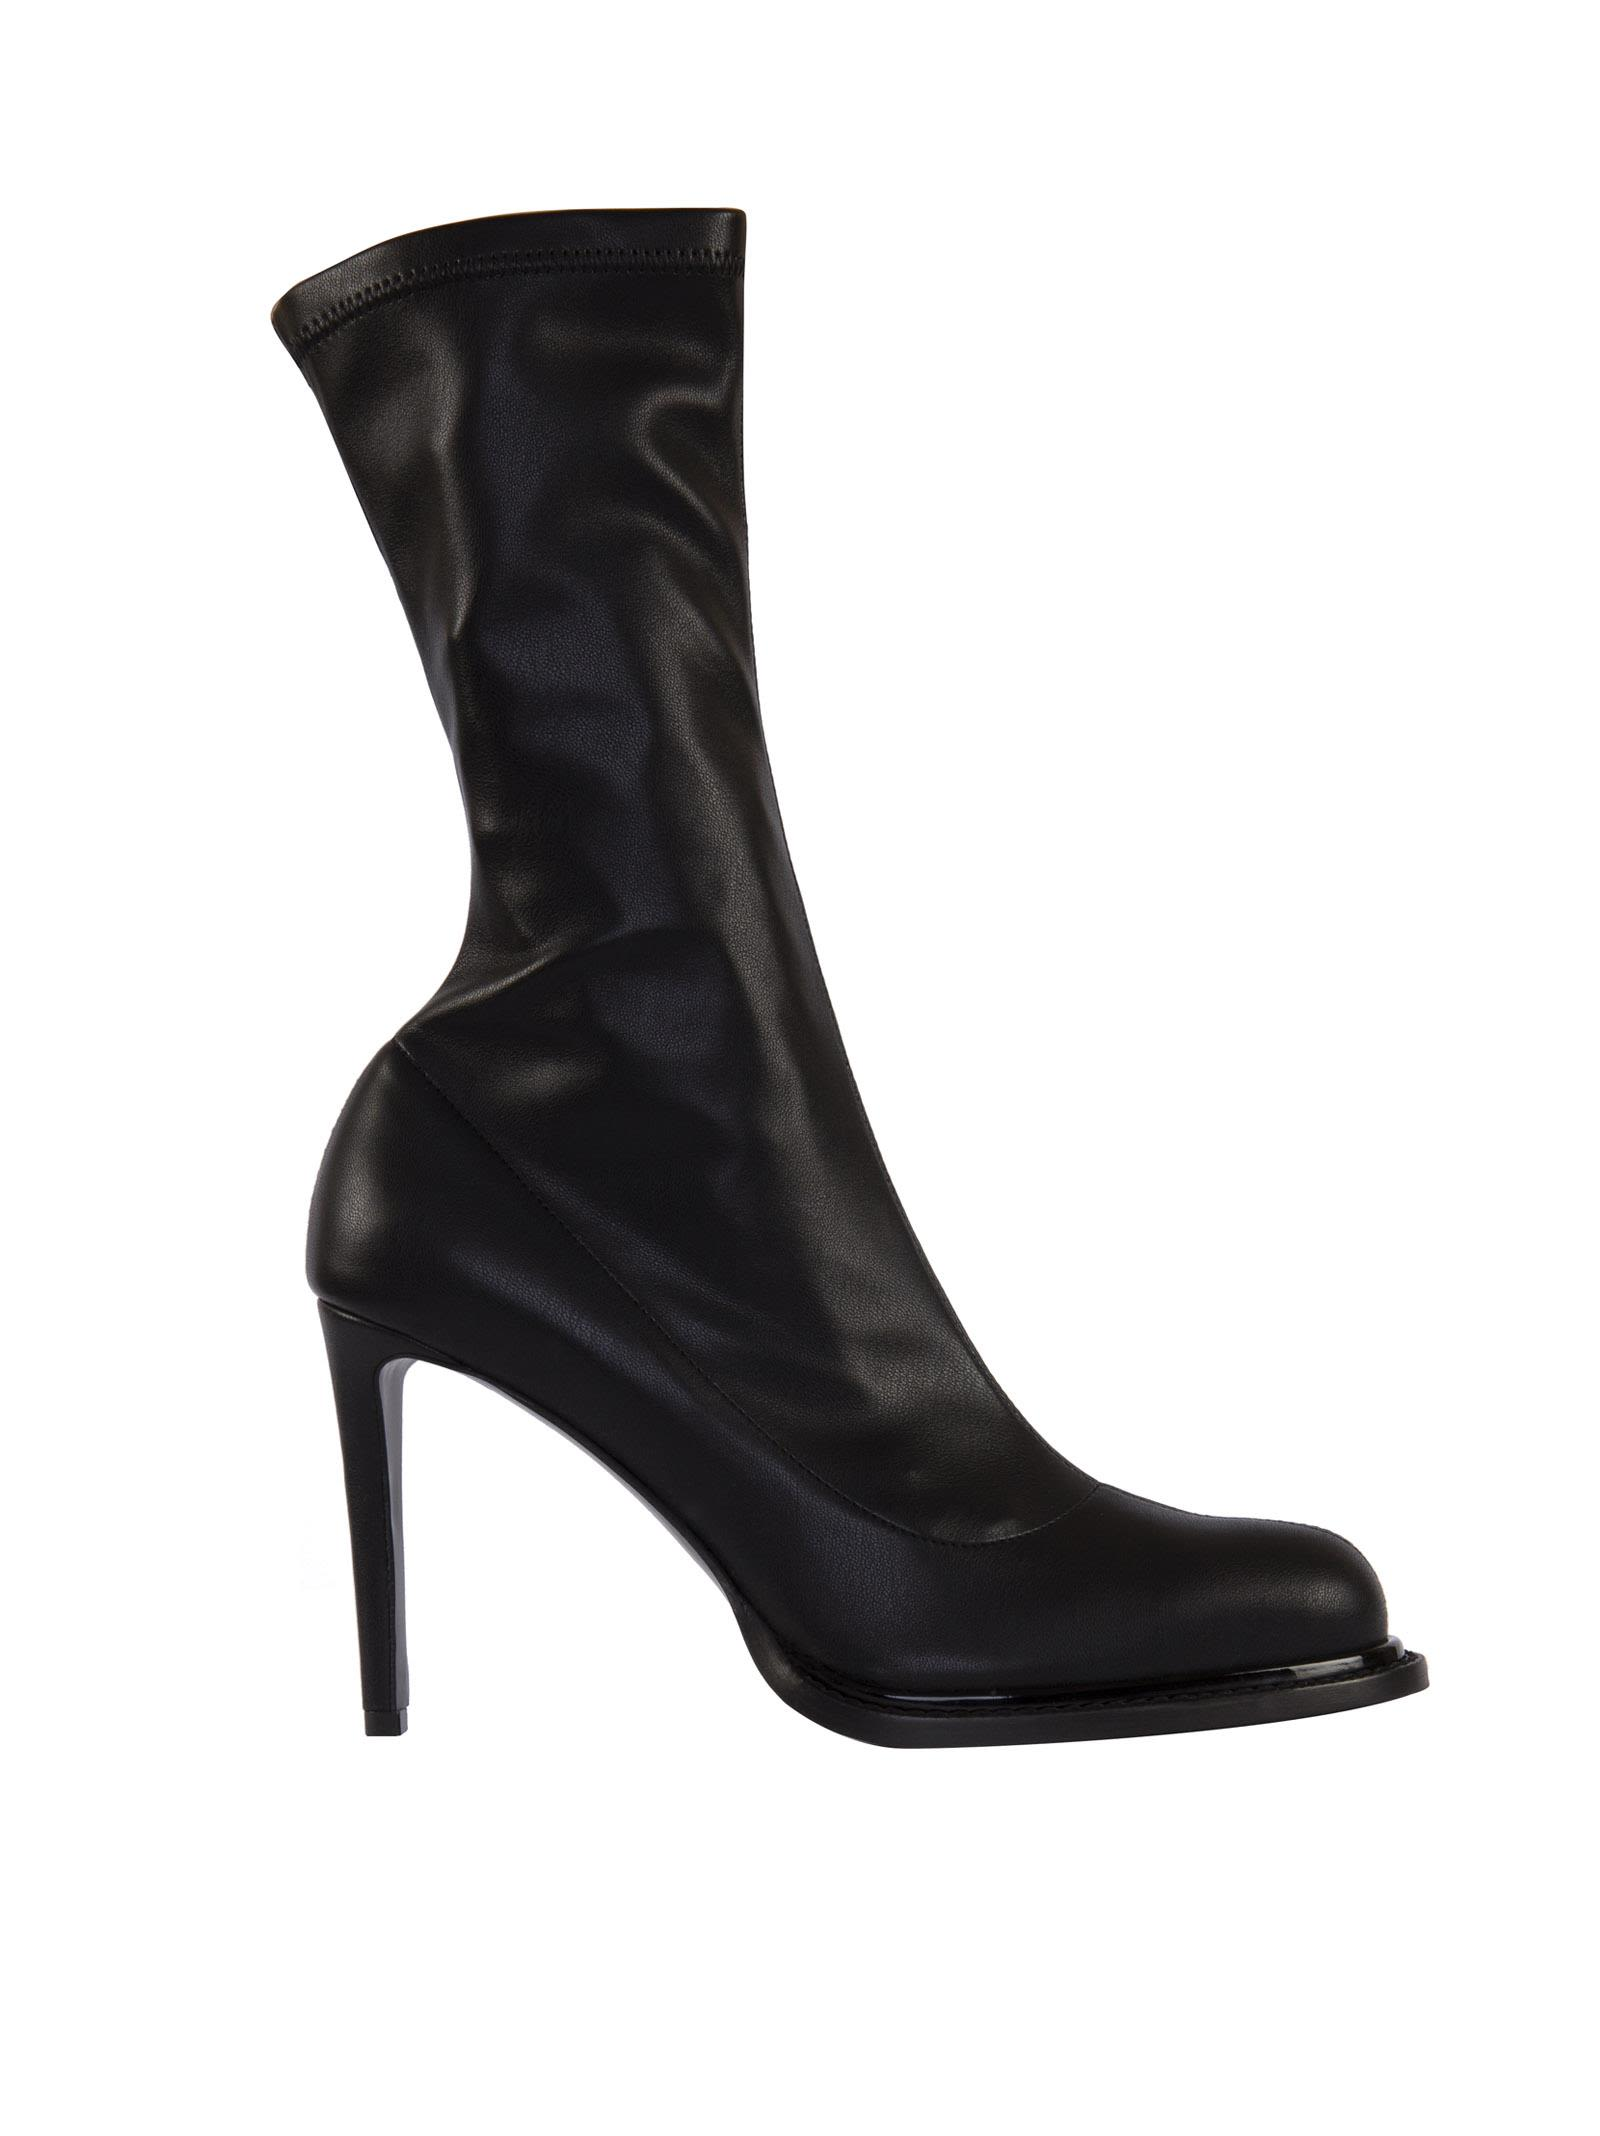 Stella Mccartney Palmer Booties In Alter Nappa